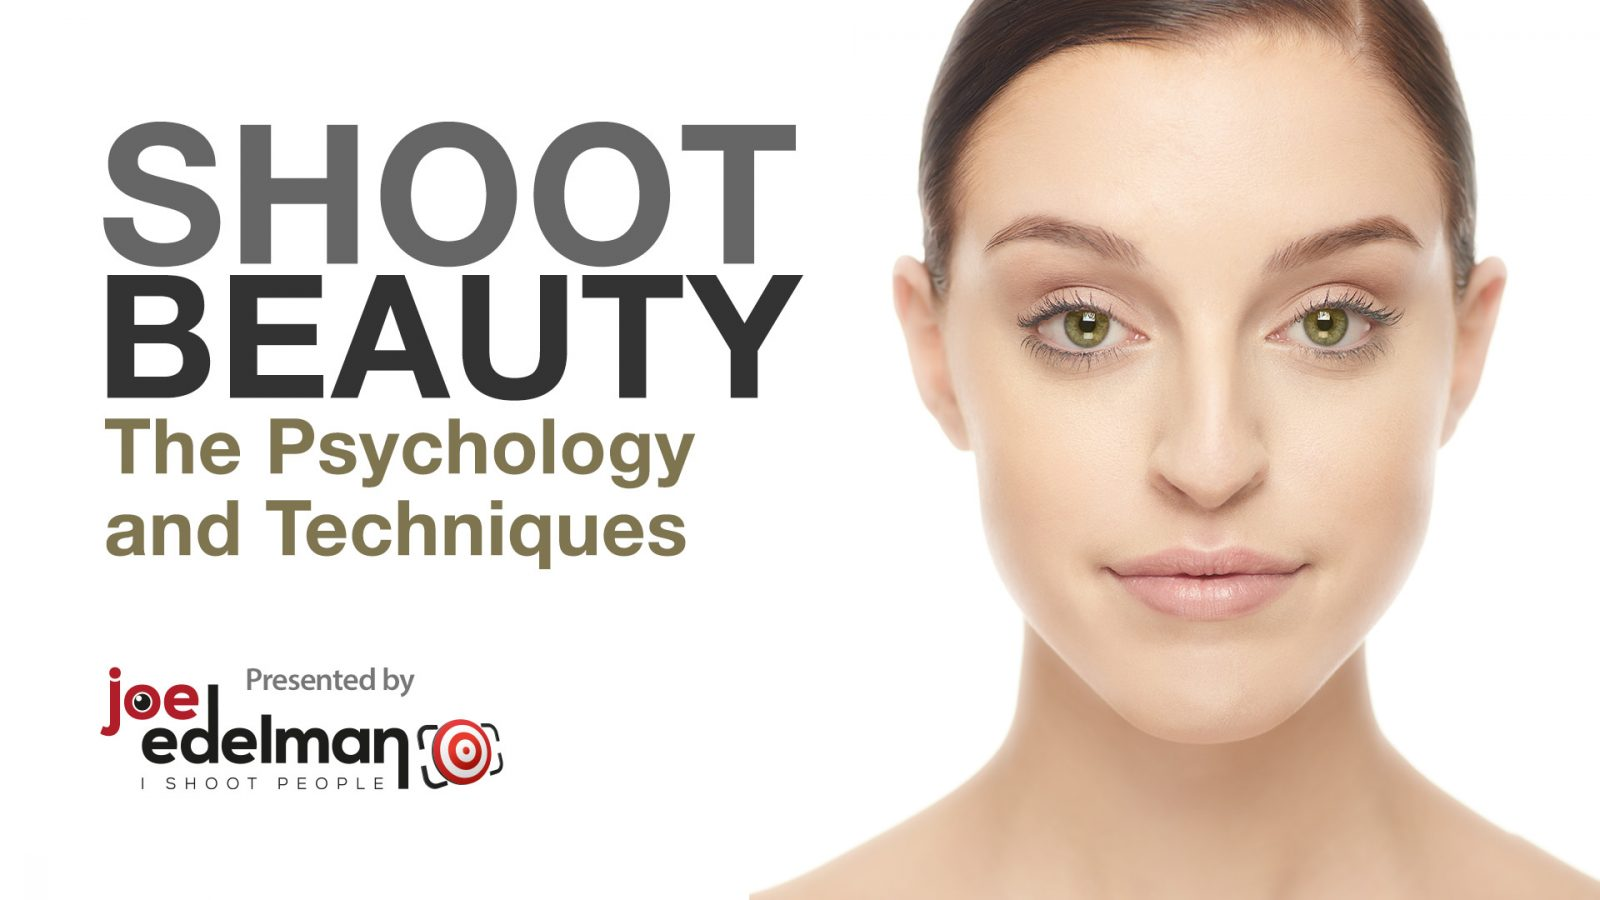 SHOOT BEAUTY: The Psychology and Techniques